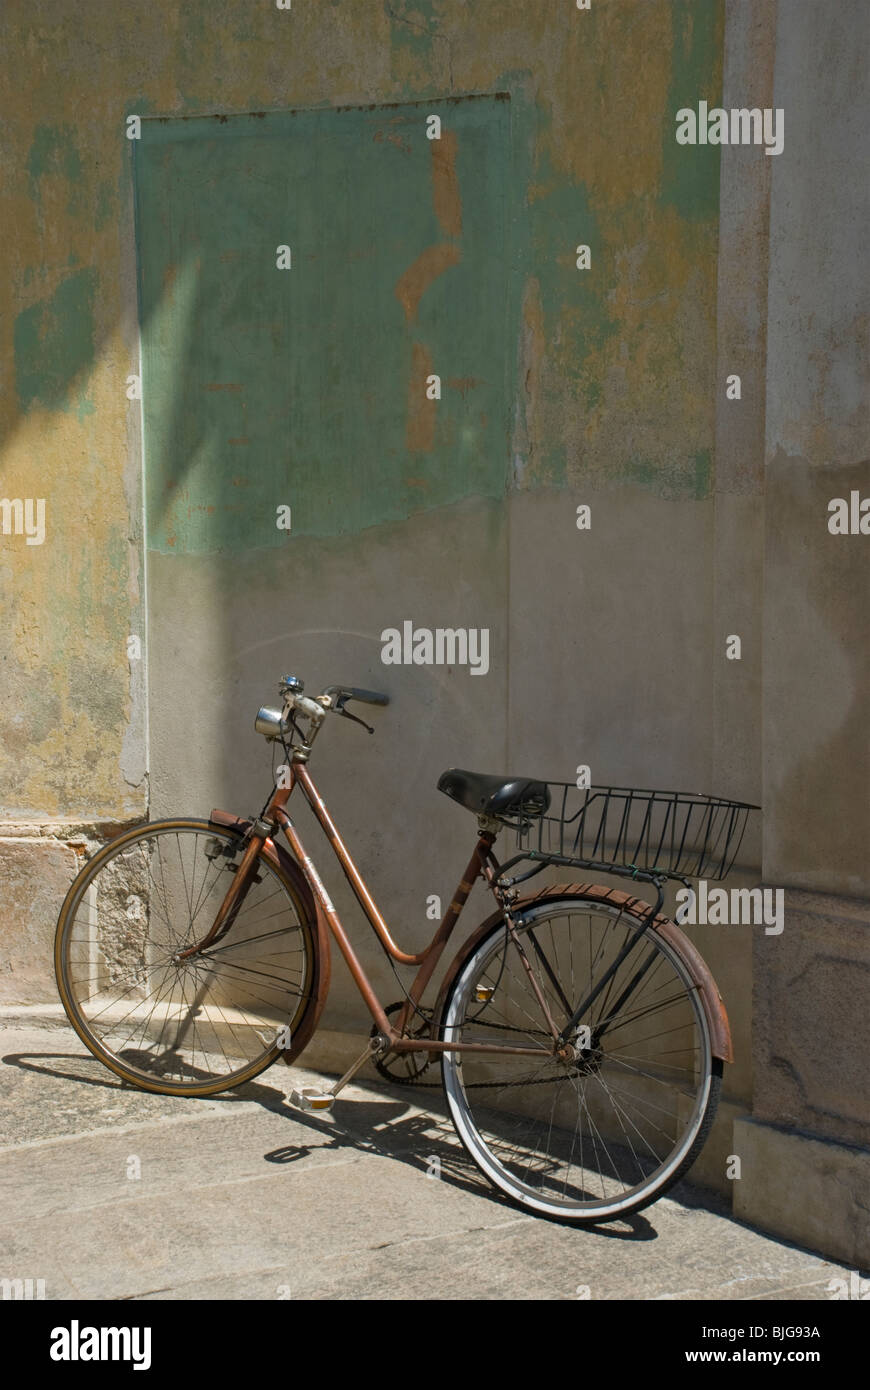 Old style bicycle leaning on colored wall - Stock Image